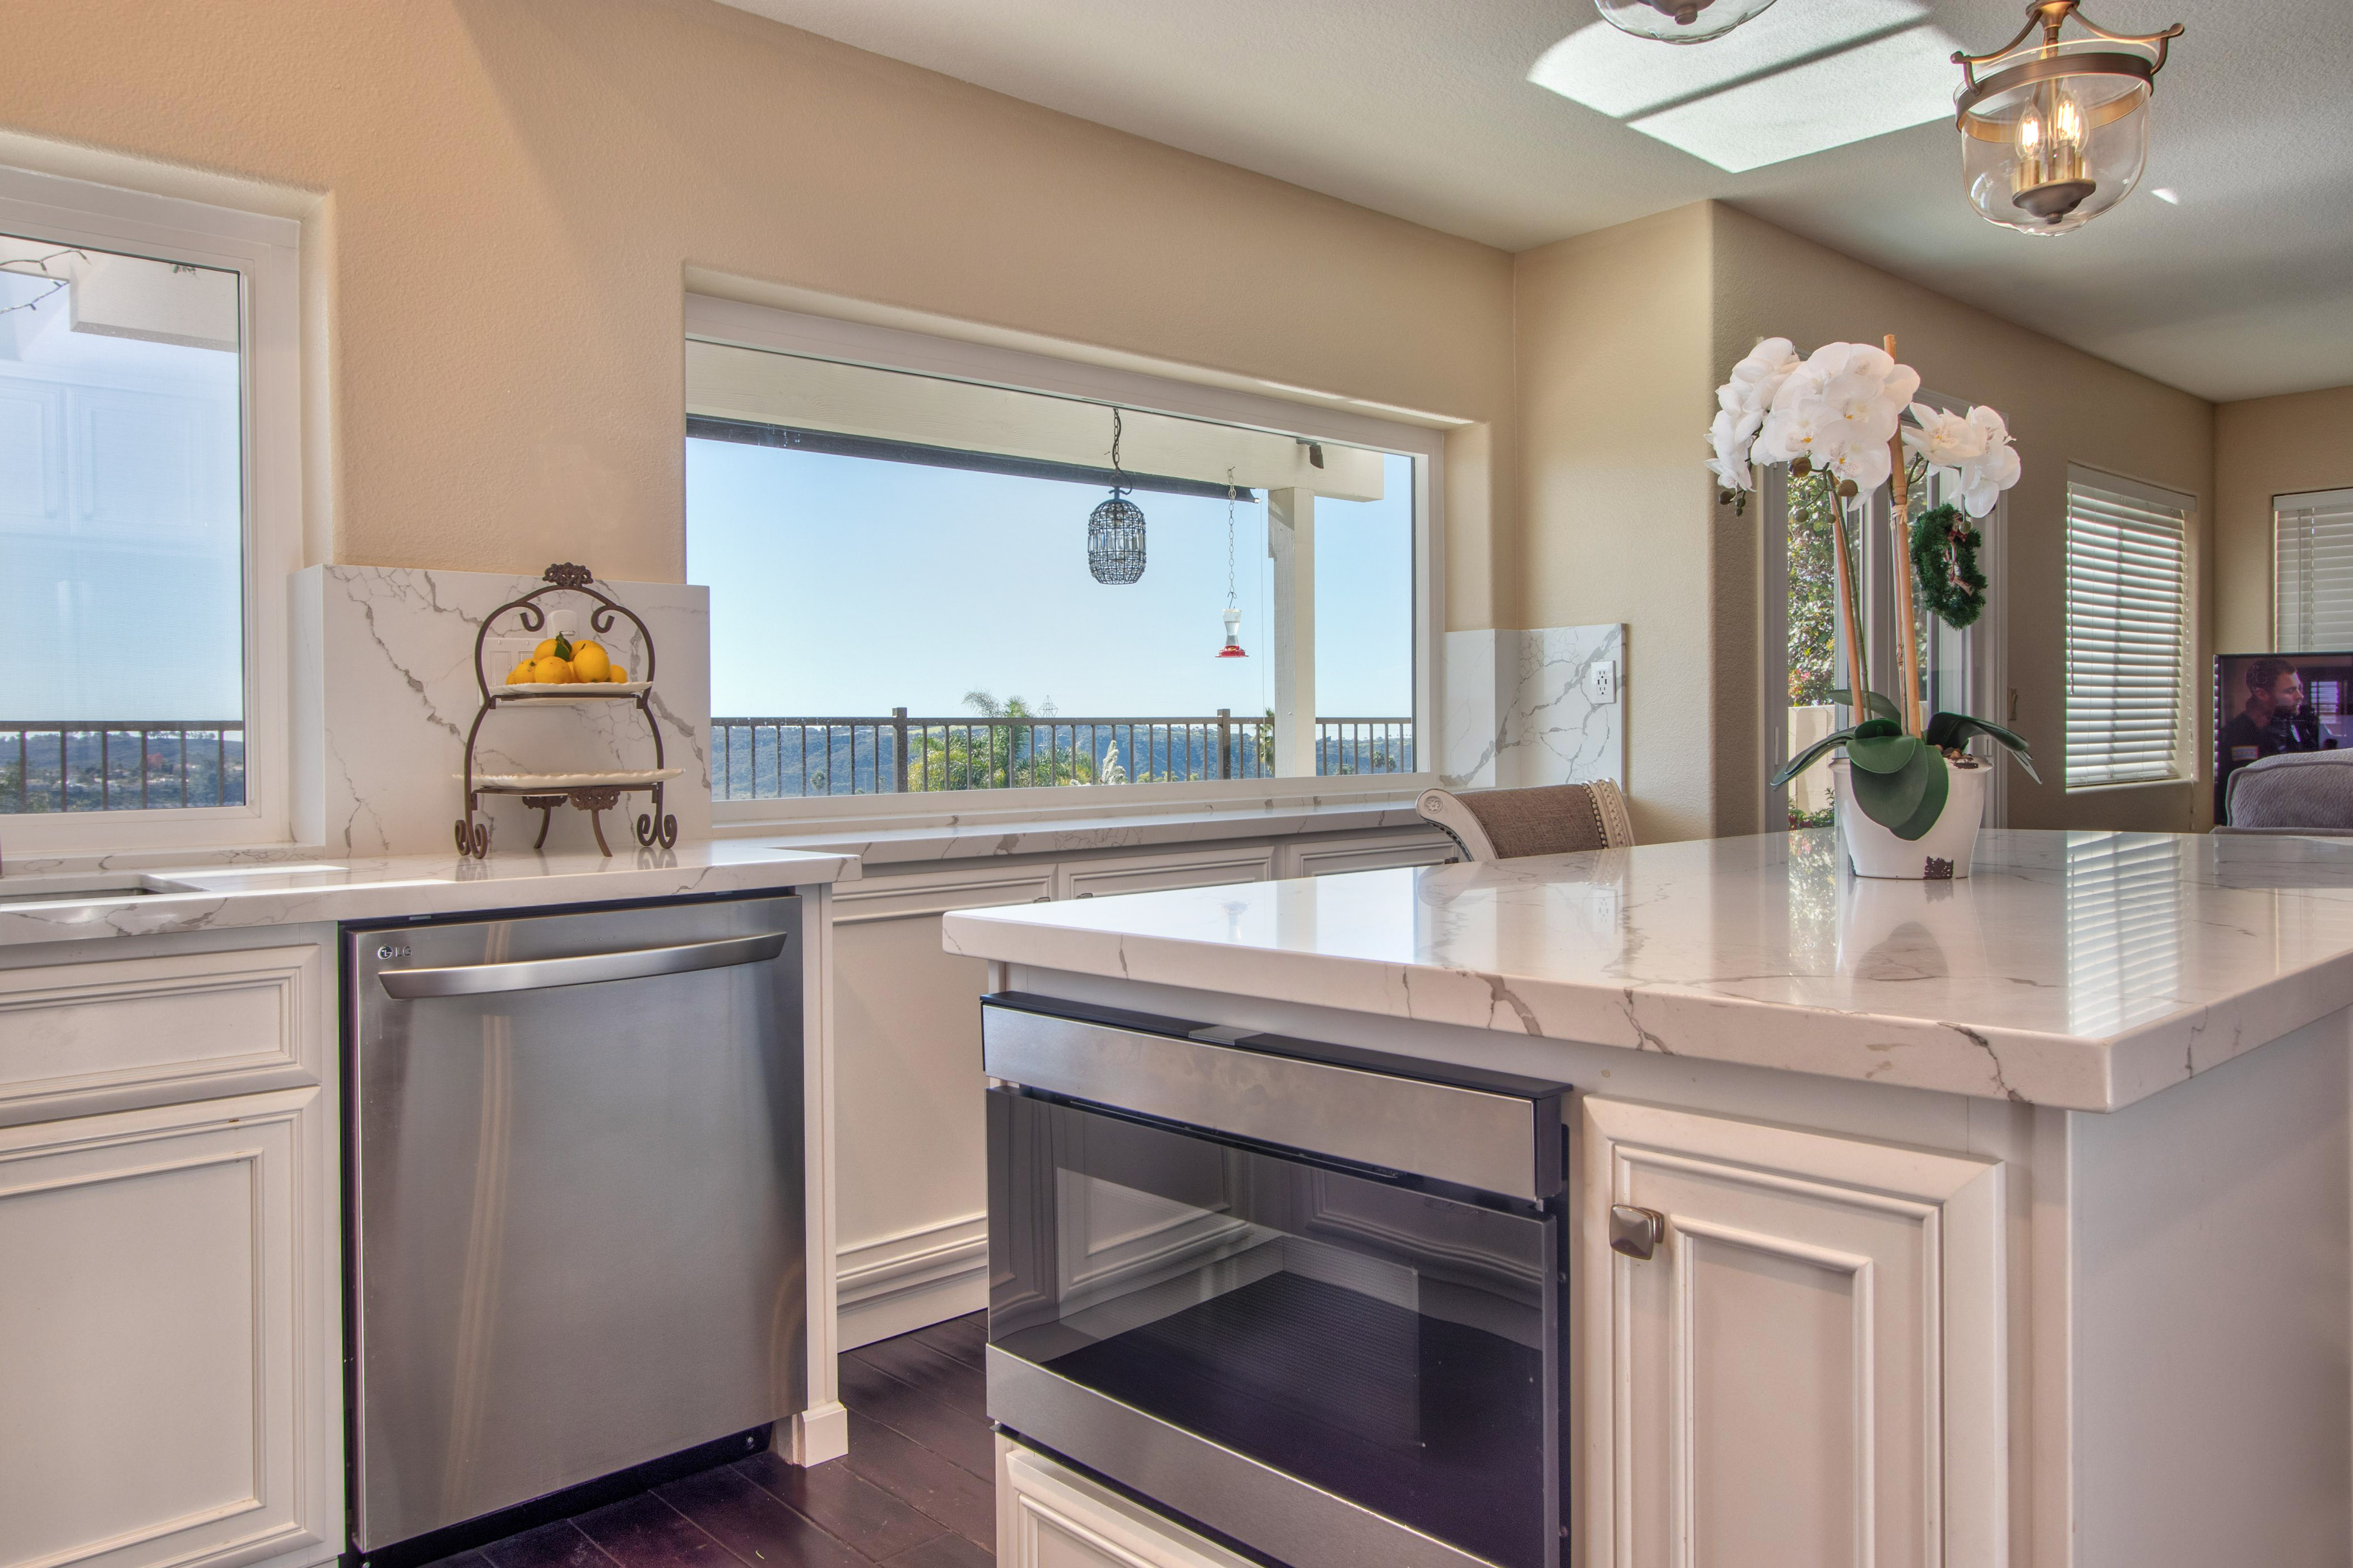 Carlsbad-Cabinet-Refacing-Project-16